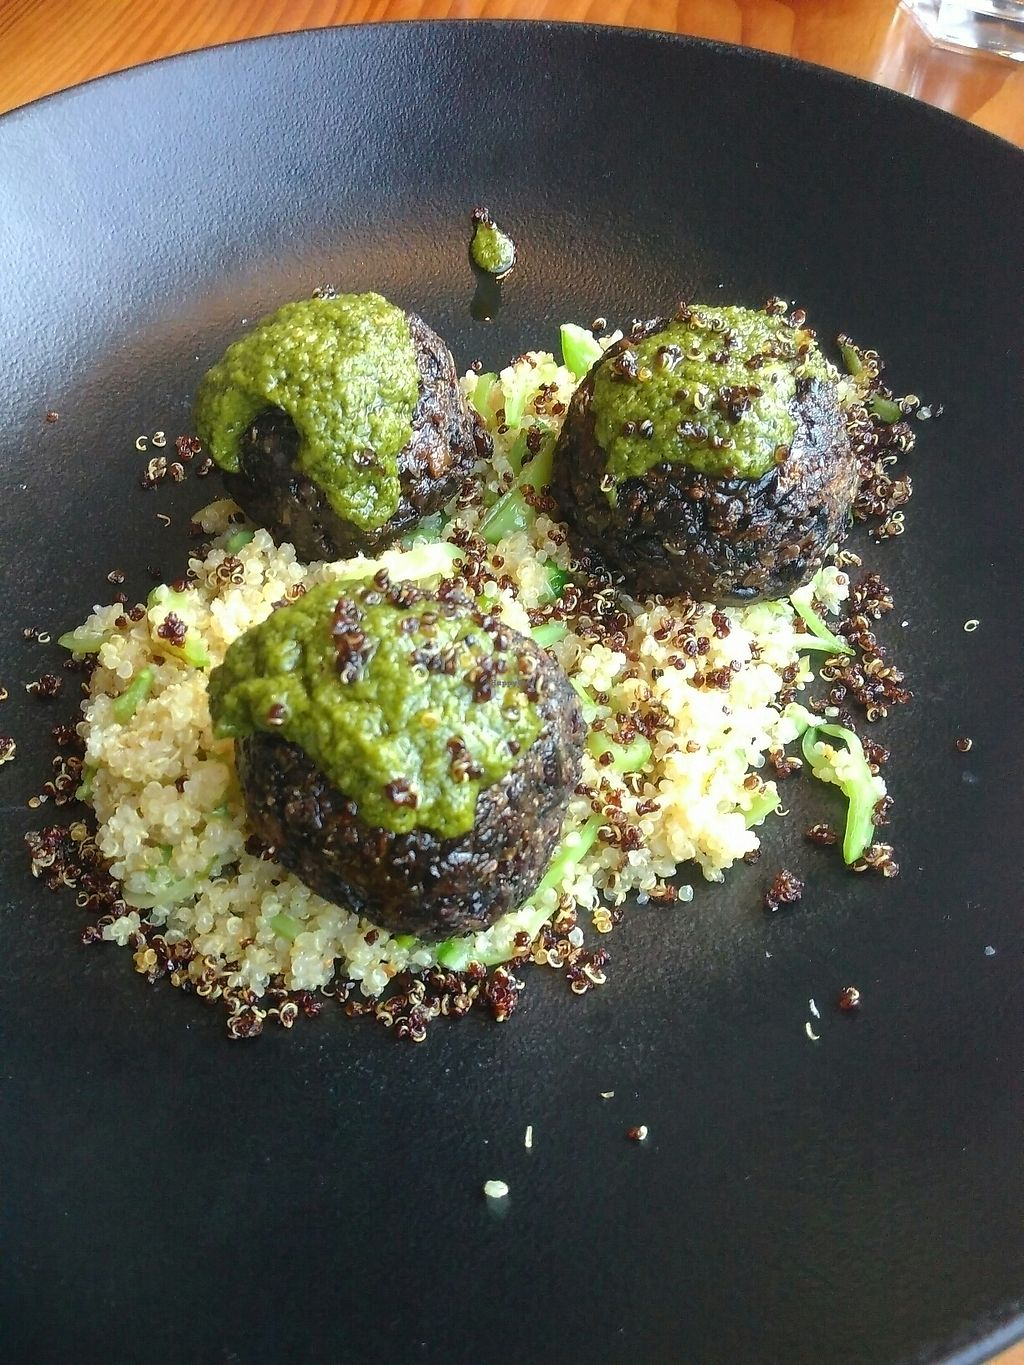 """Photo of SoBo  by <a href=""""/members/profile/ibenaj"""">ibenaj</a> <br/>Lentil meatballs with quinoa and chimchurri <br/> July 11, 2017  - <a href='/contact/abuse/image/74706/278960'>Report</a>"""